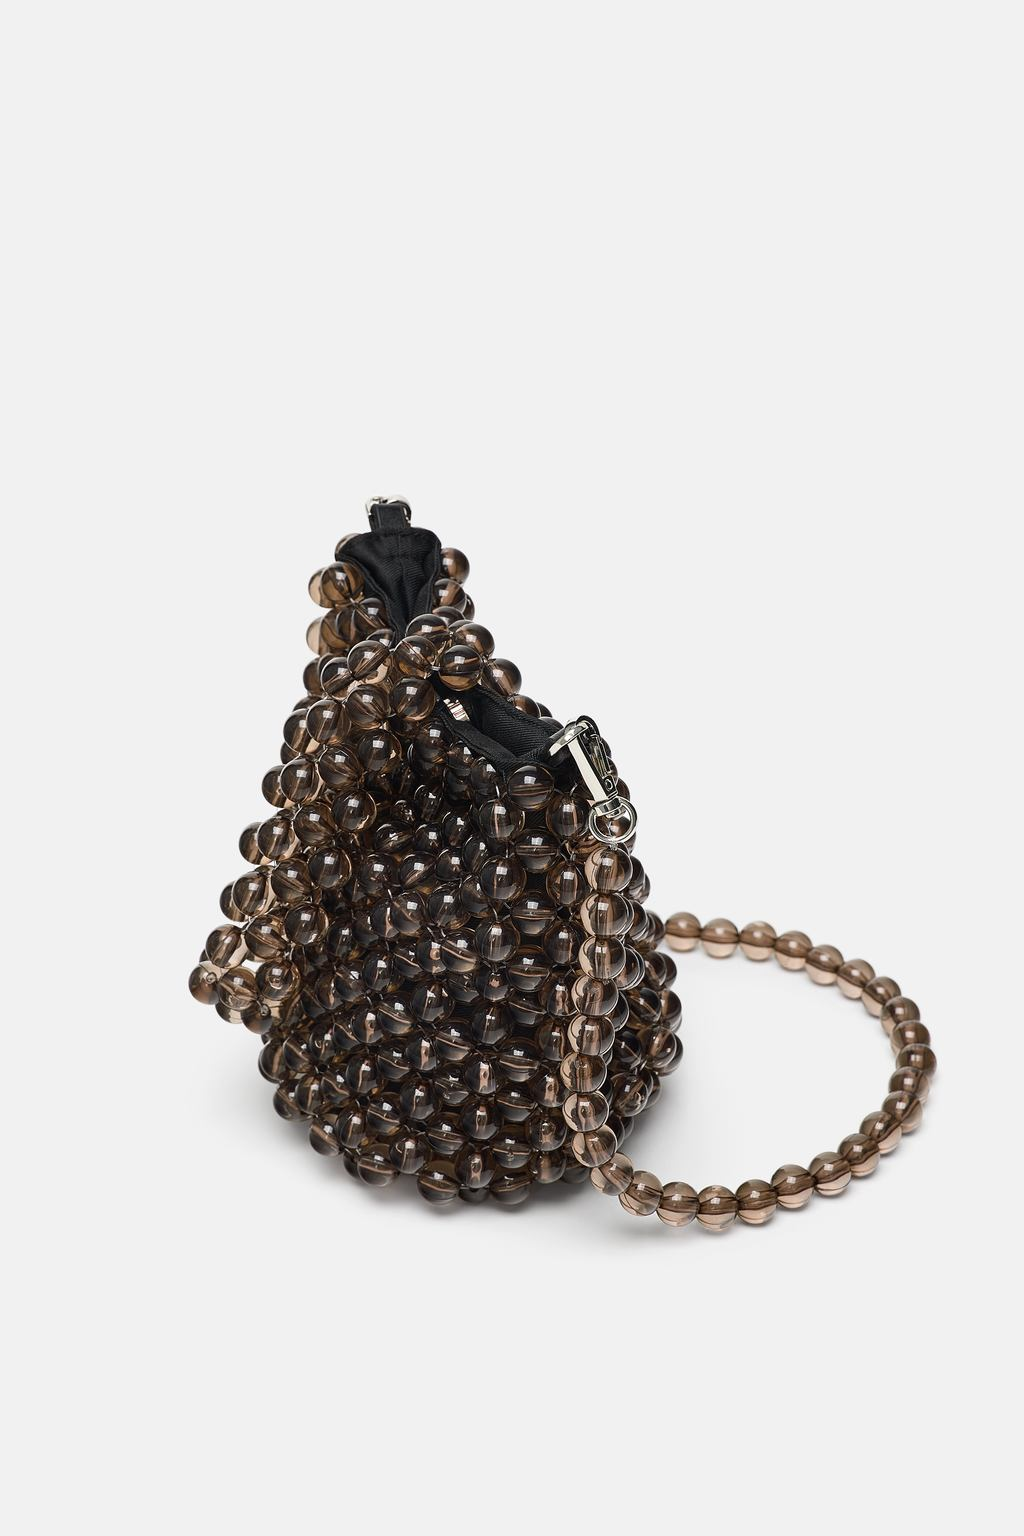 MINI BEADED BUCKET BAG $59.90 -